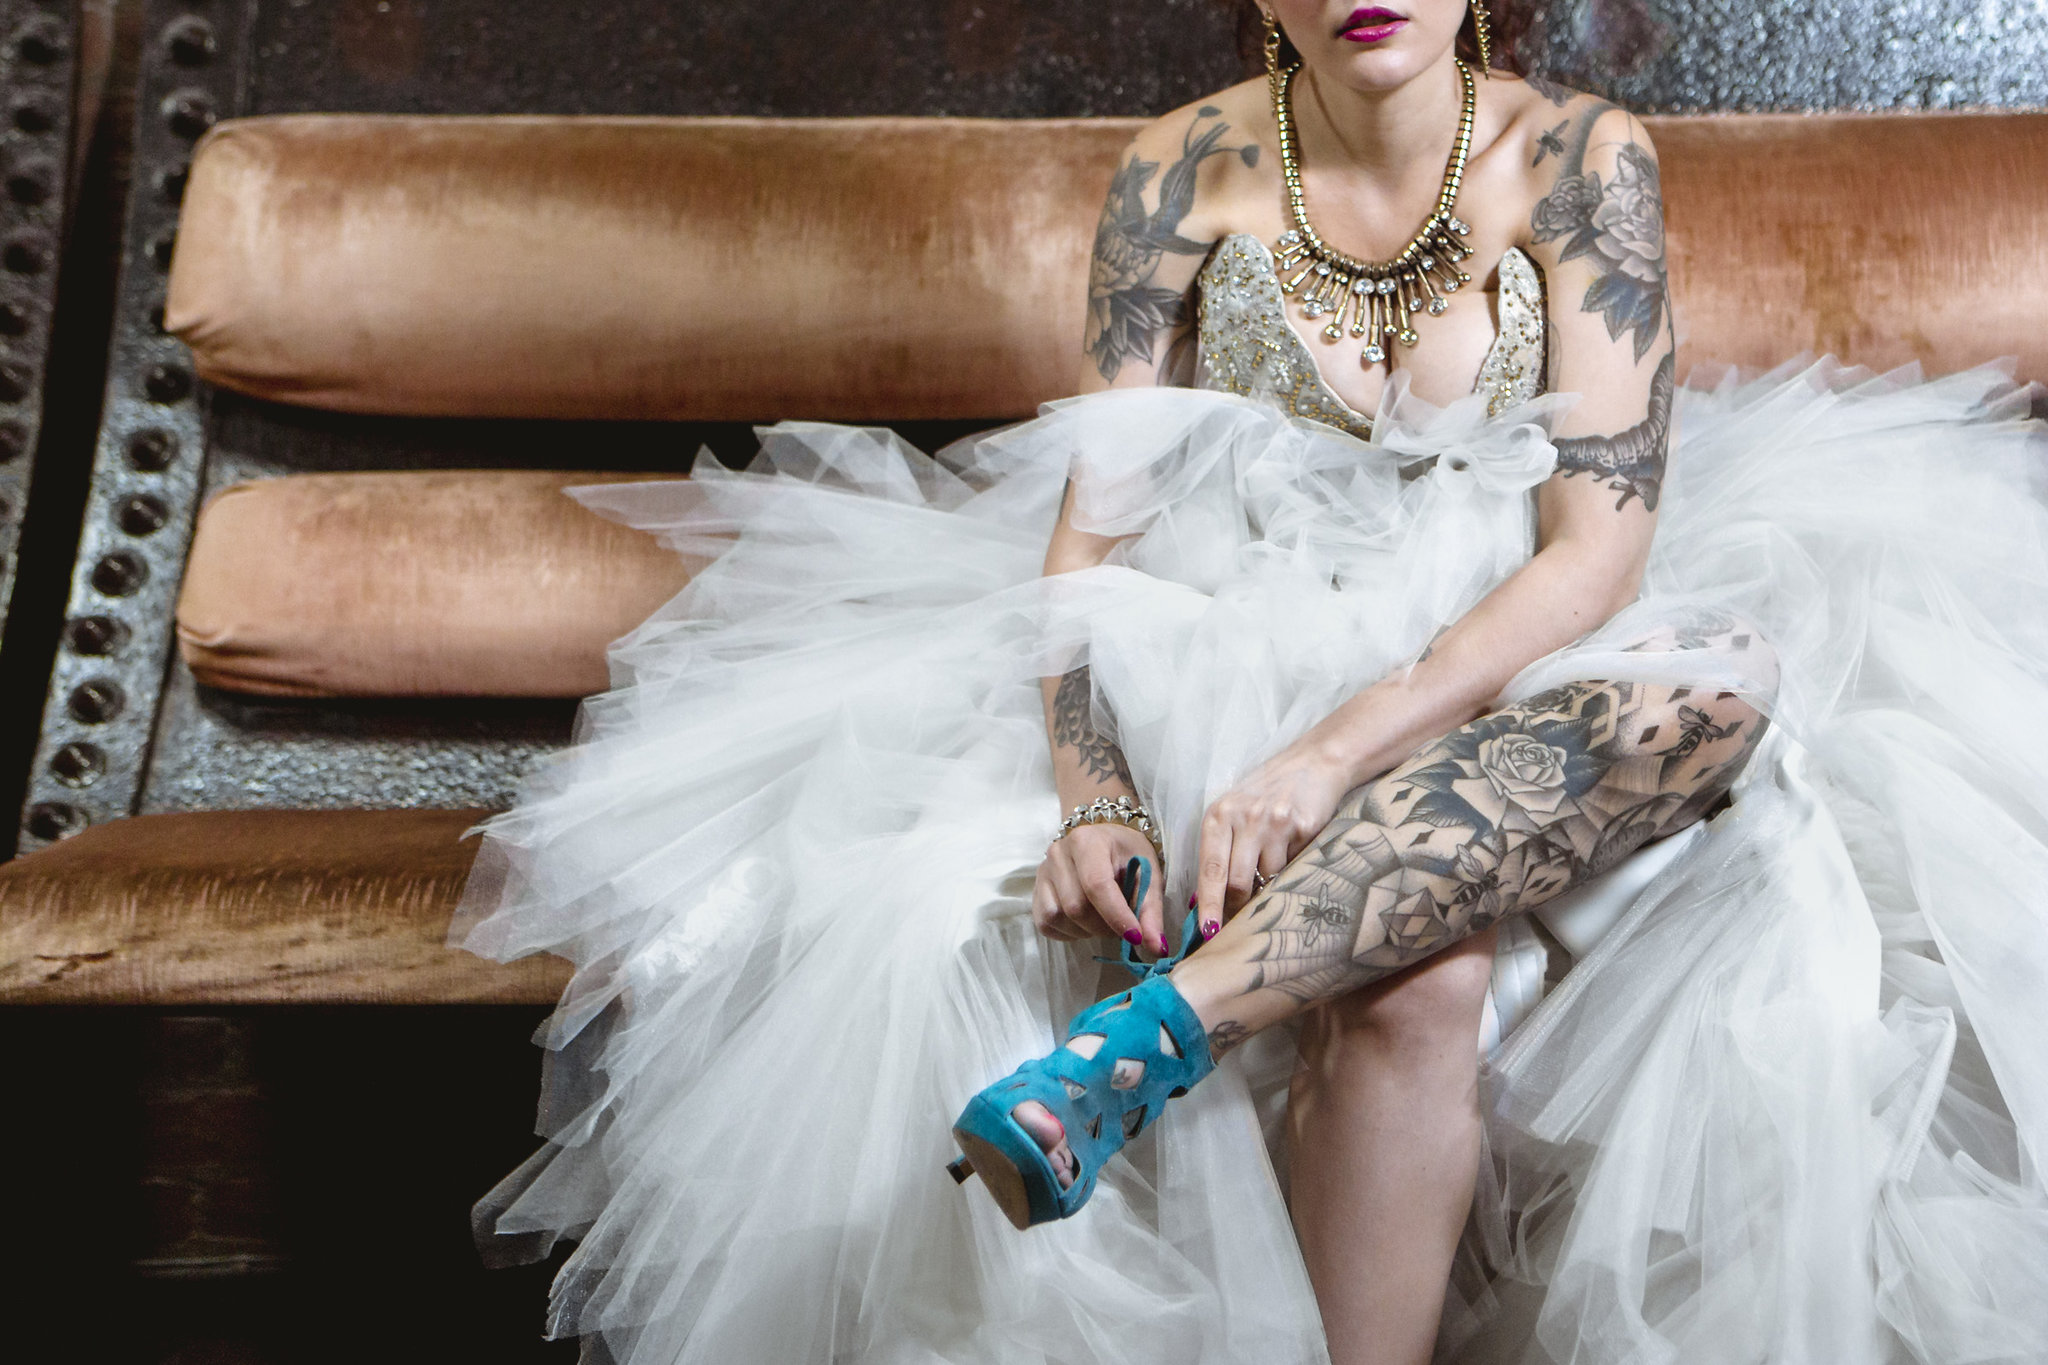 Tattooed bride putting on her shoes.